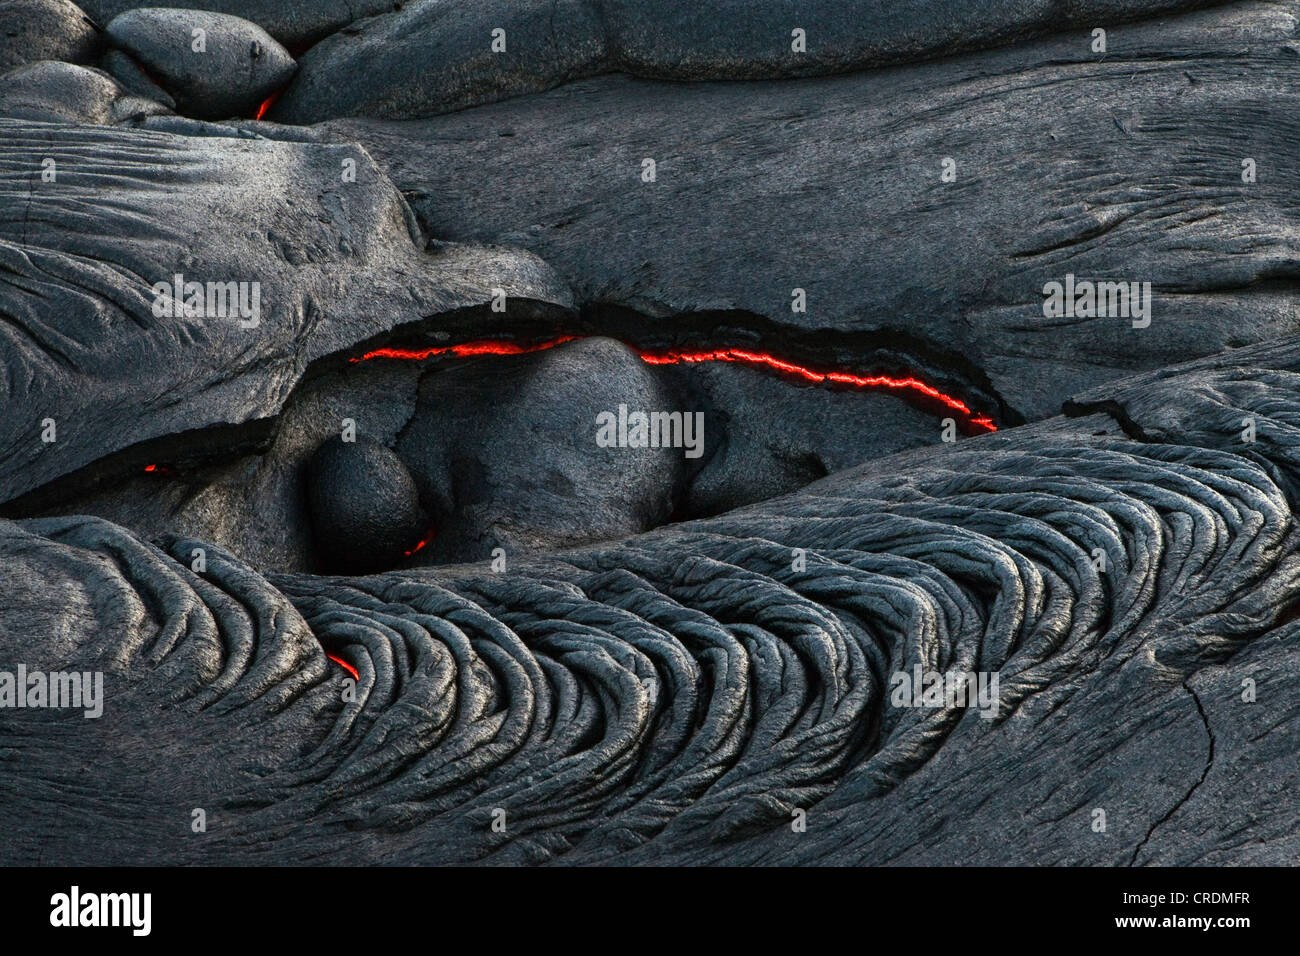 Viscous Pāhoehoe lava flowing from rifts in the East Rift Zone towards the sea, lava field at the Kilauea - Stock Image